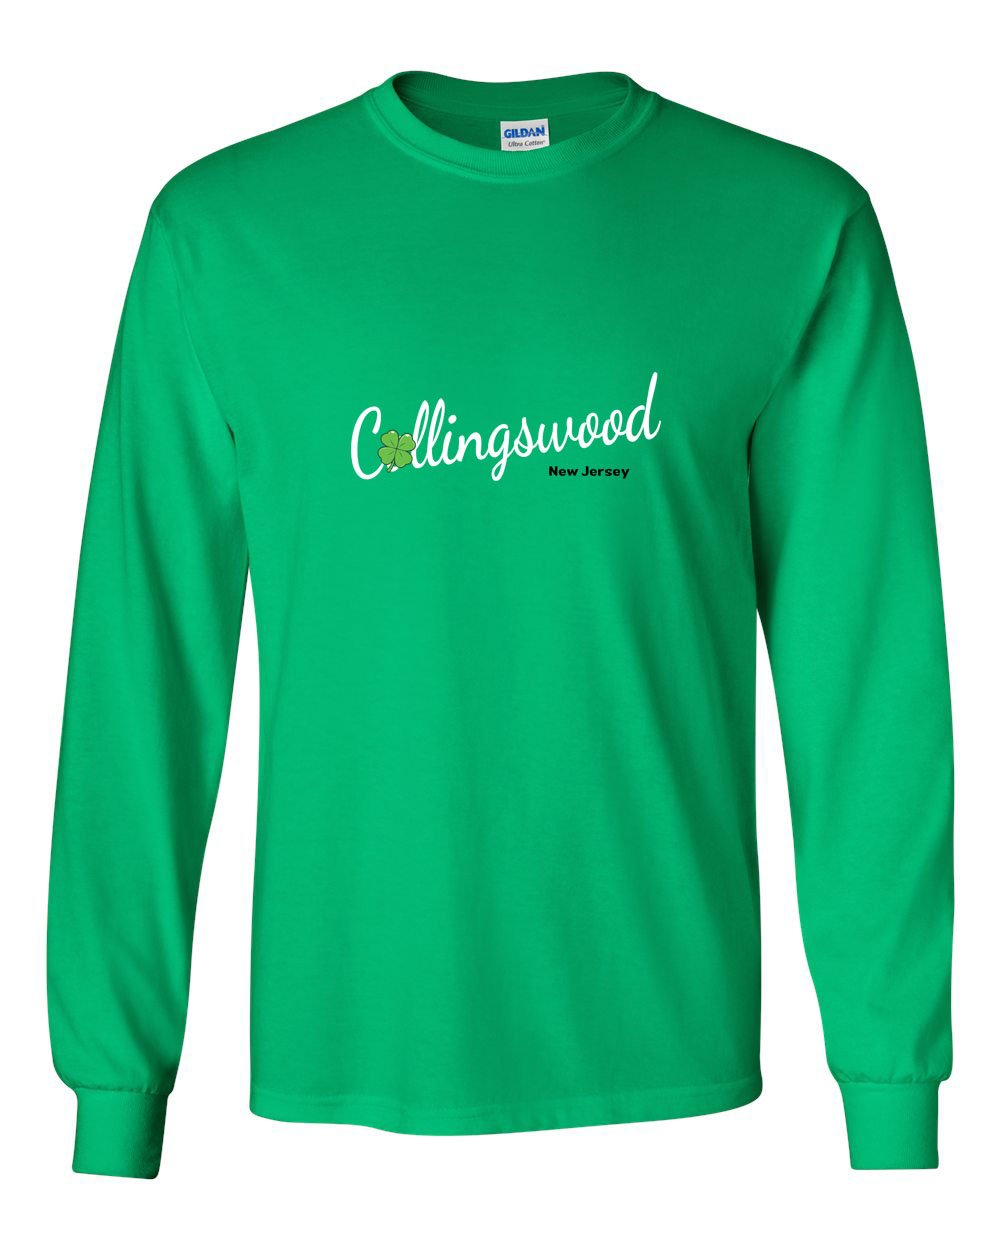 Irish Collingswood MENS Long Sleeve Heavy Cotton T-Shirt